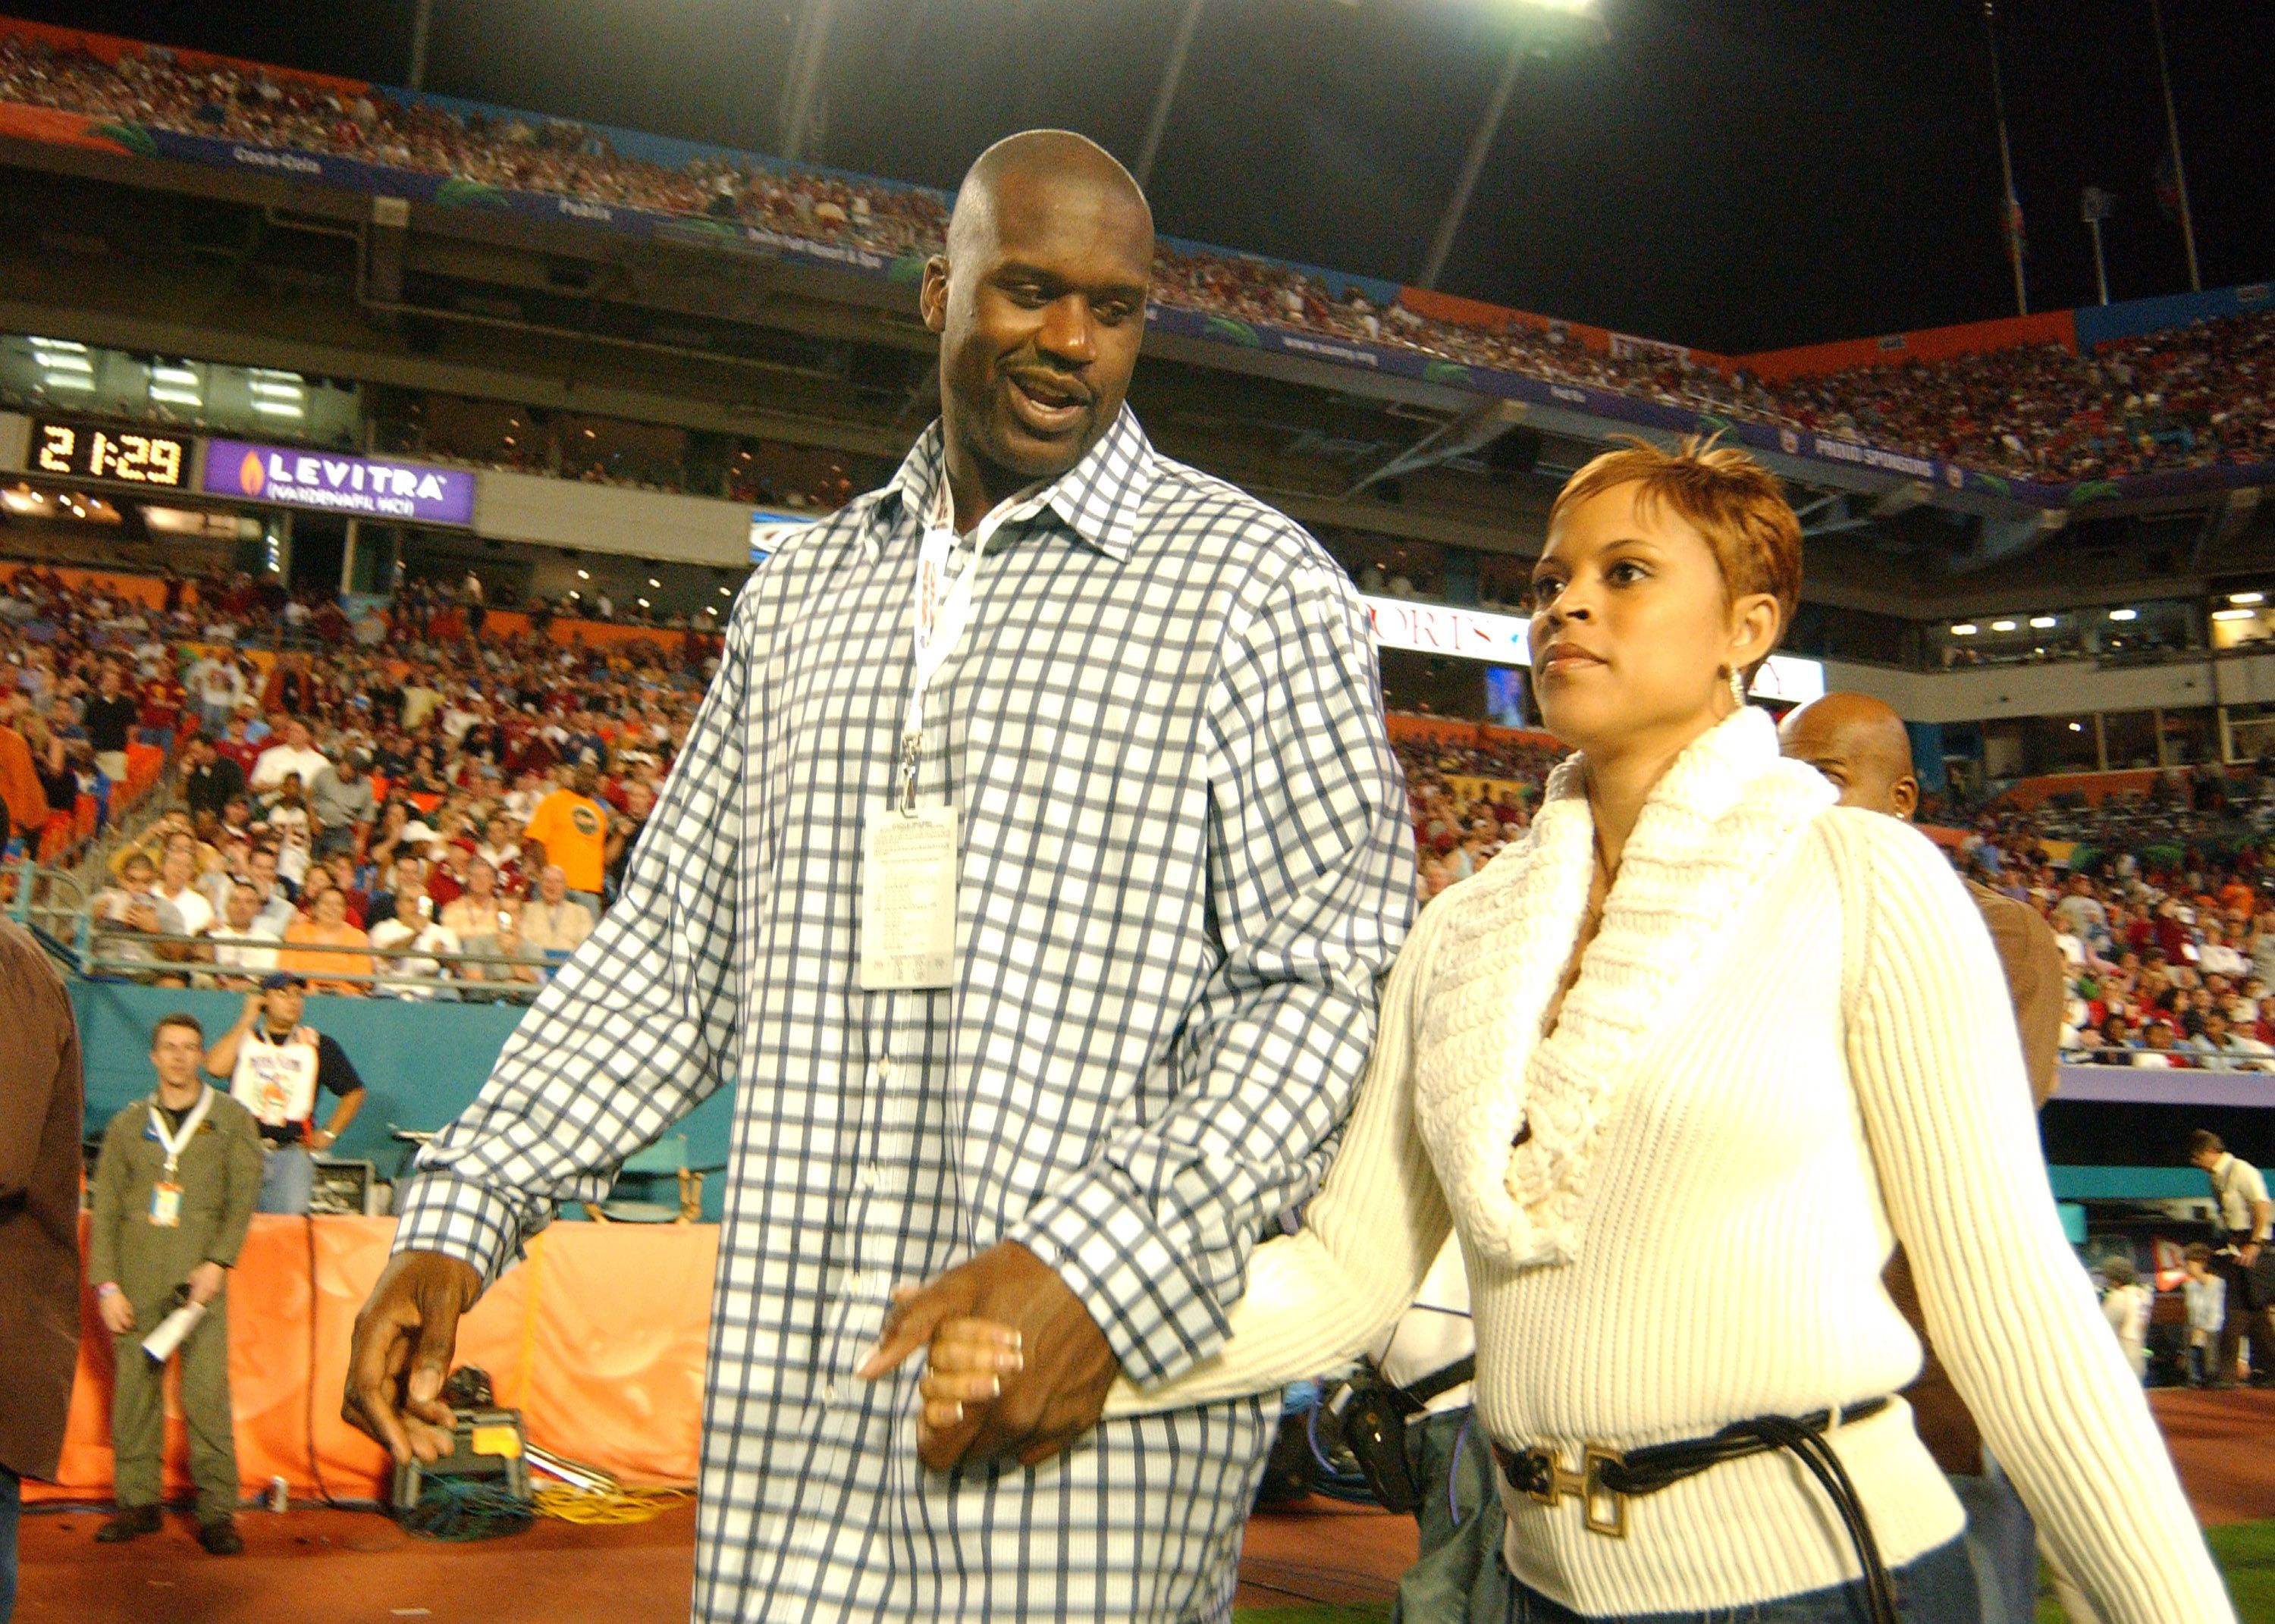 Shaquille O'Neal and wife Shaunie attend the FedEx Orange Bowl National Championship at Pro Player Stadium in Miami, Florida on January 4, 2005.   Source: Getty Images